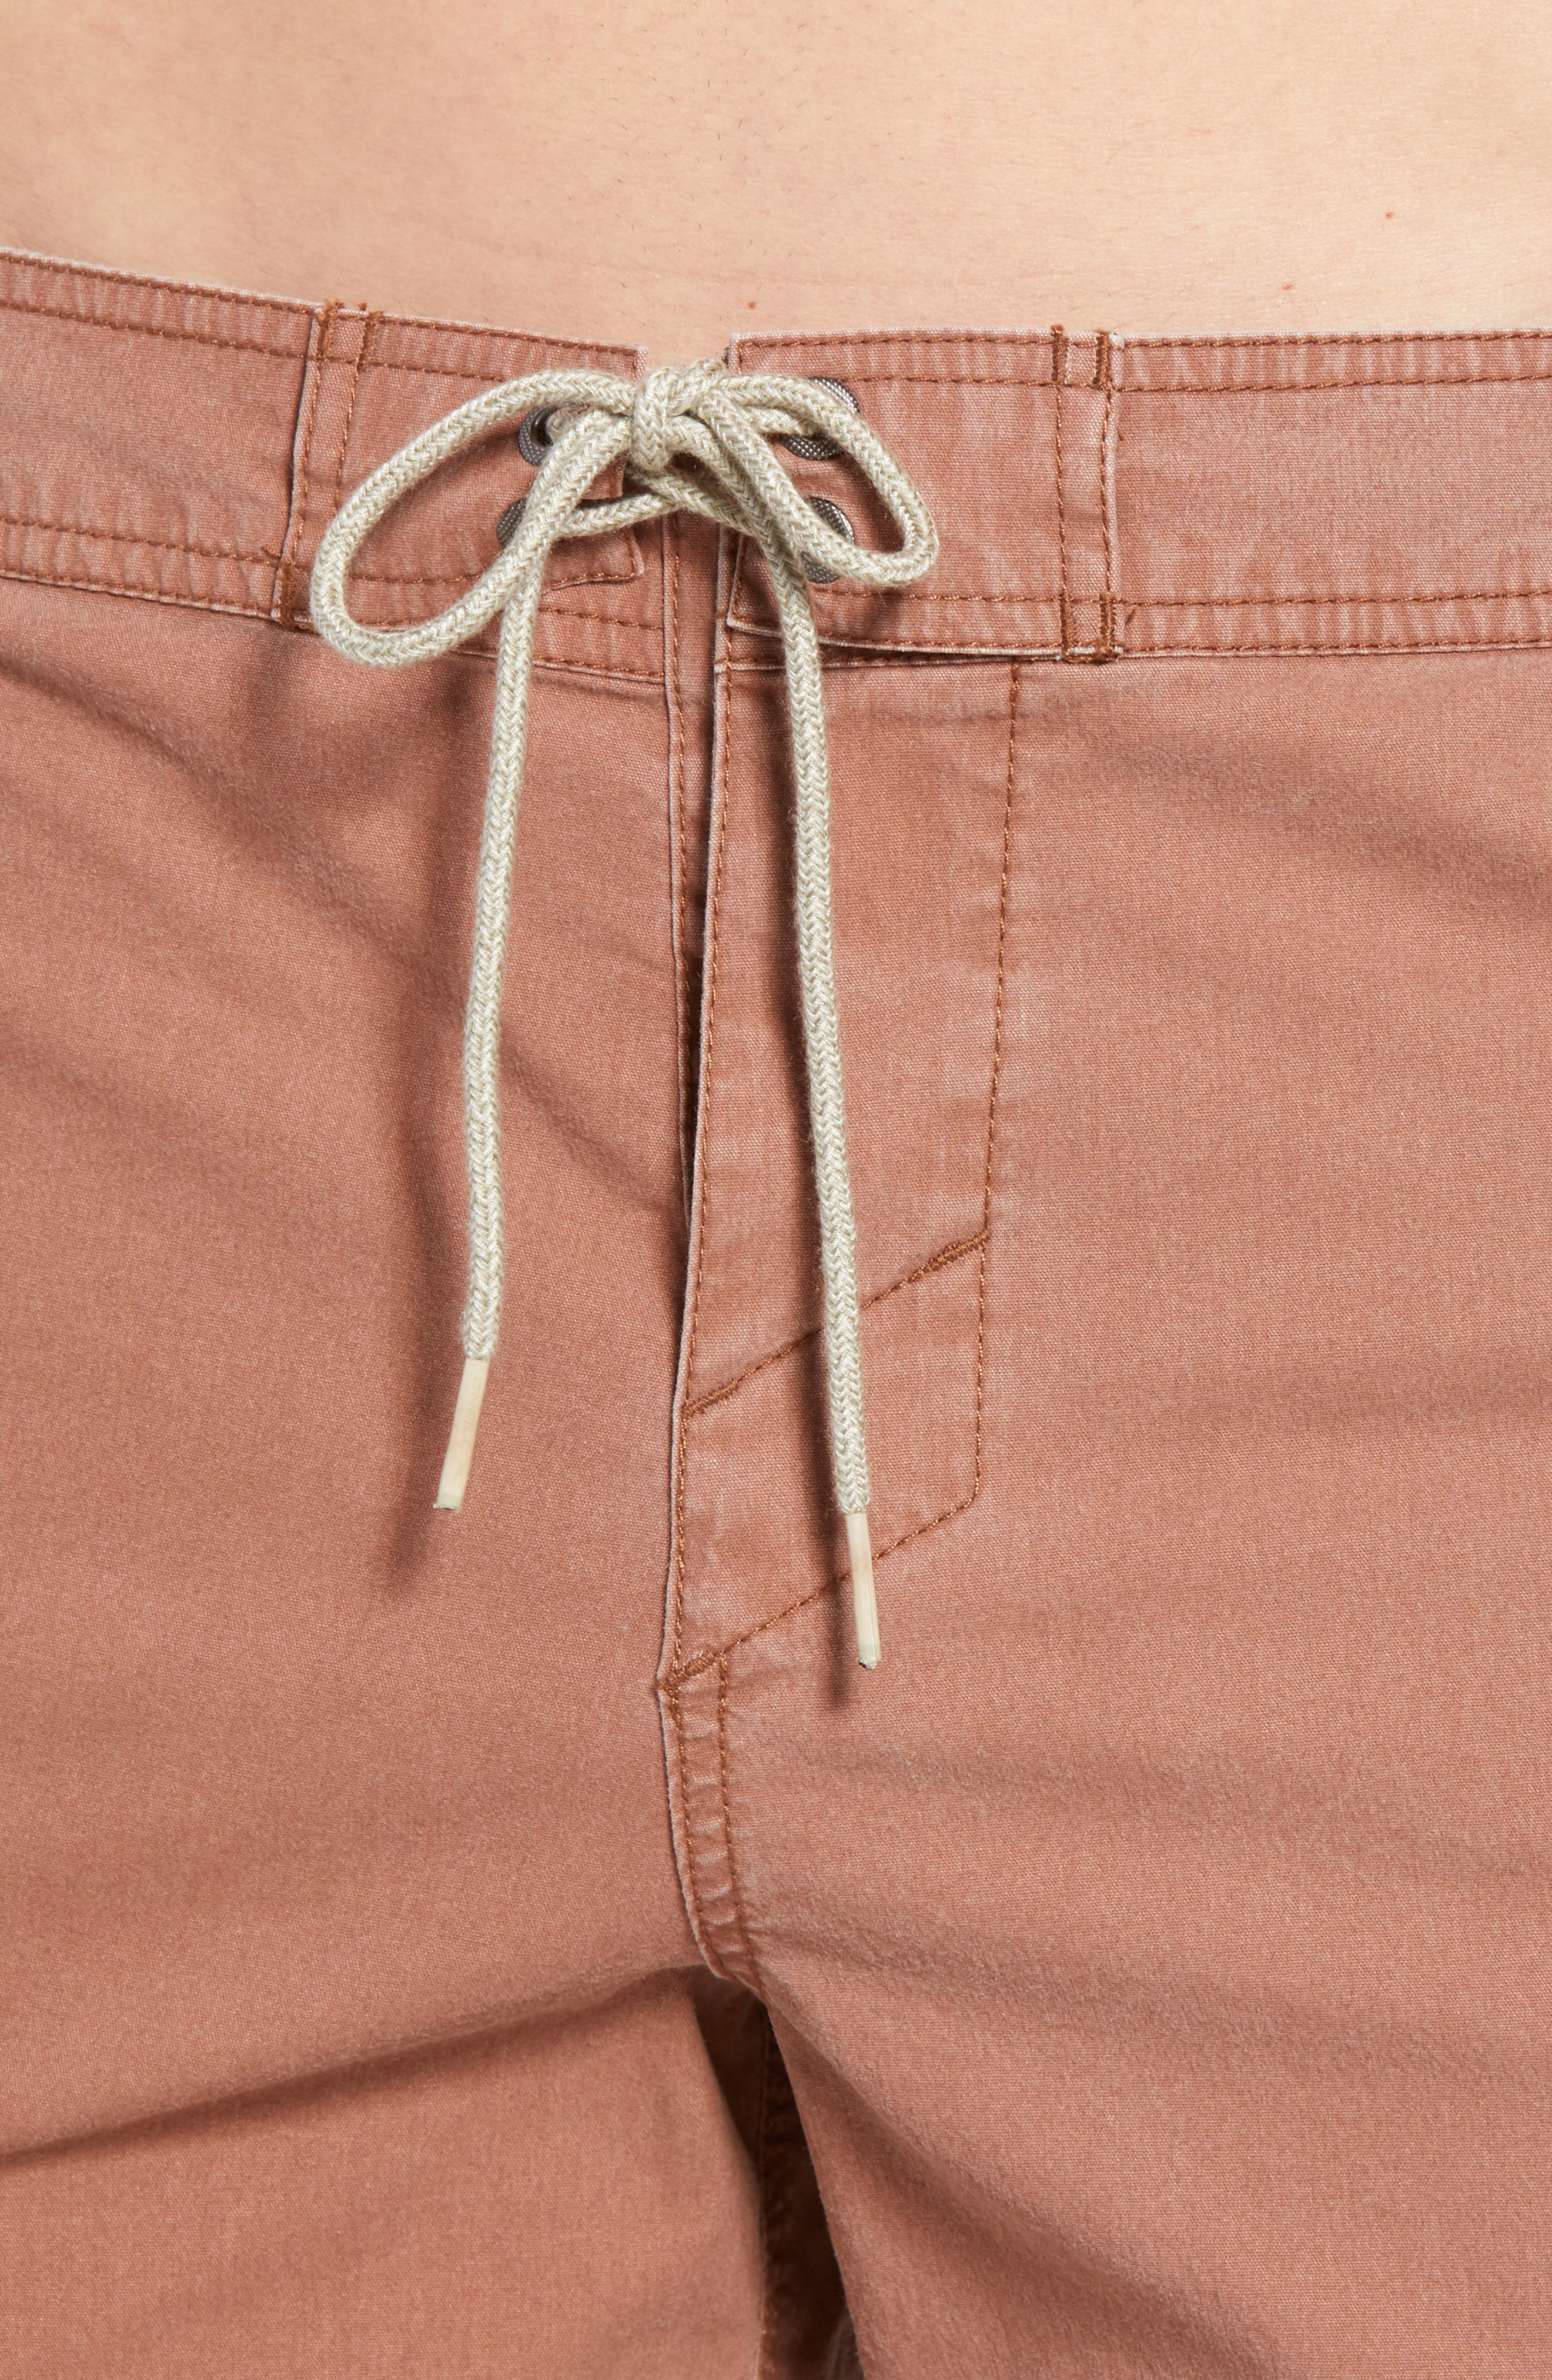 Faded Cruzer Board Shorts,                             Alternate thumbnail 4, color,                             218